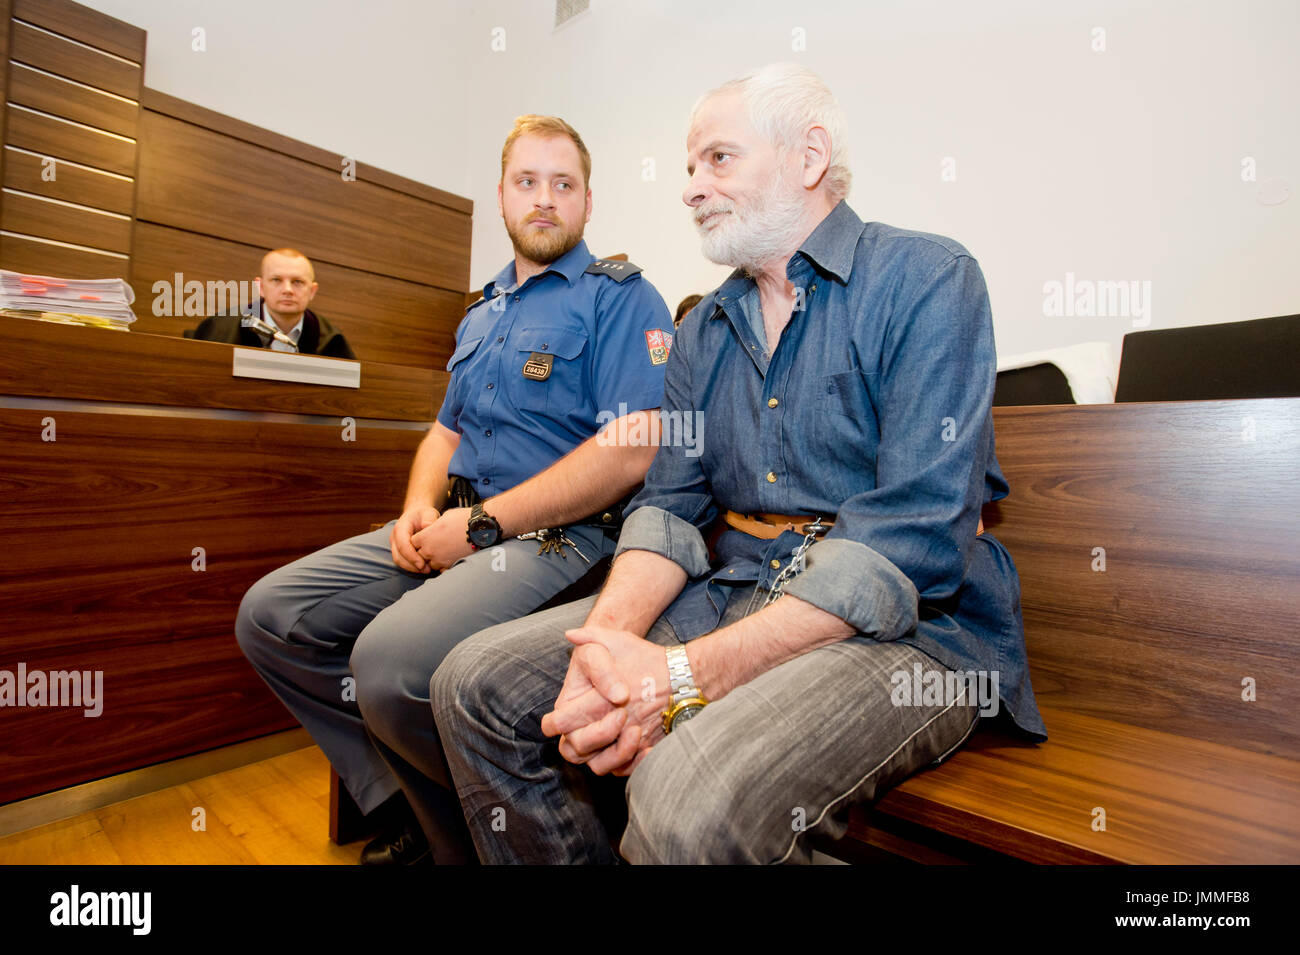 Prague, Czech Republic. 28th July, 2017. The Prague Municipal Court sentenced today, on Friday, July 28, 2017, Jawad Mansour, a Cypriot of Syrian origin, to 12.5 years in prison for the murder of a 20-year-old Ukrainian woman in Prague in July 1999, after which he left for home and Cyprus only extradited him to the Czech Republic last year. Mansour dismisses any guilt. The verdict is not yet valid. Credit: Vit Simanek/CTK Photo/Alamy Live News - Stock Image